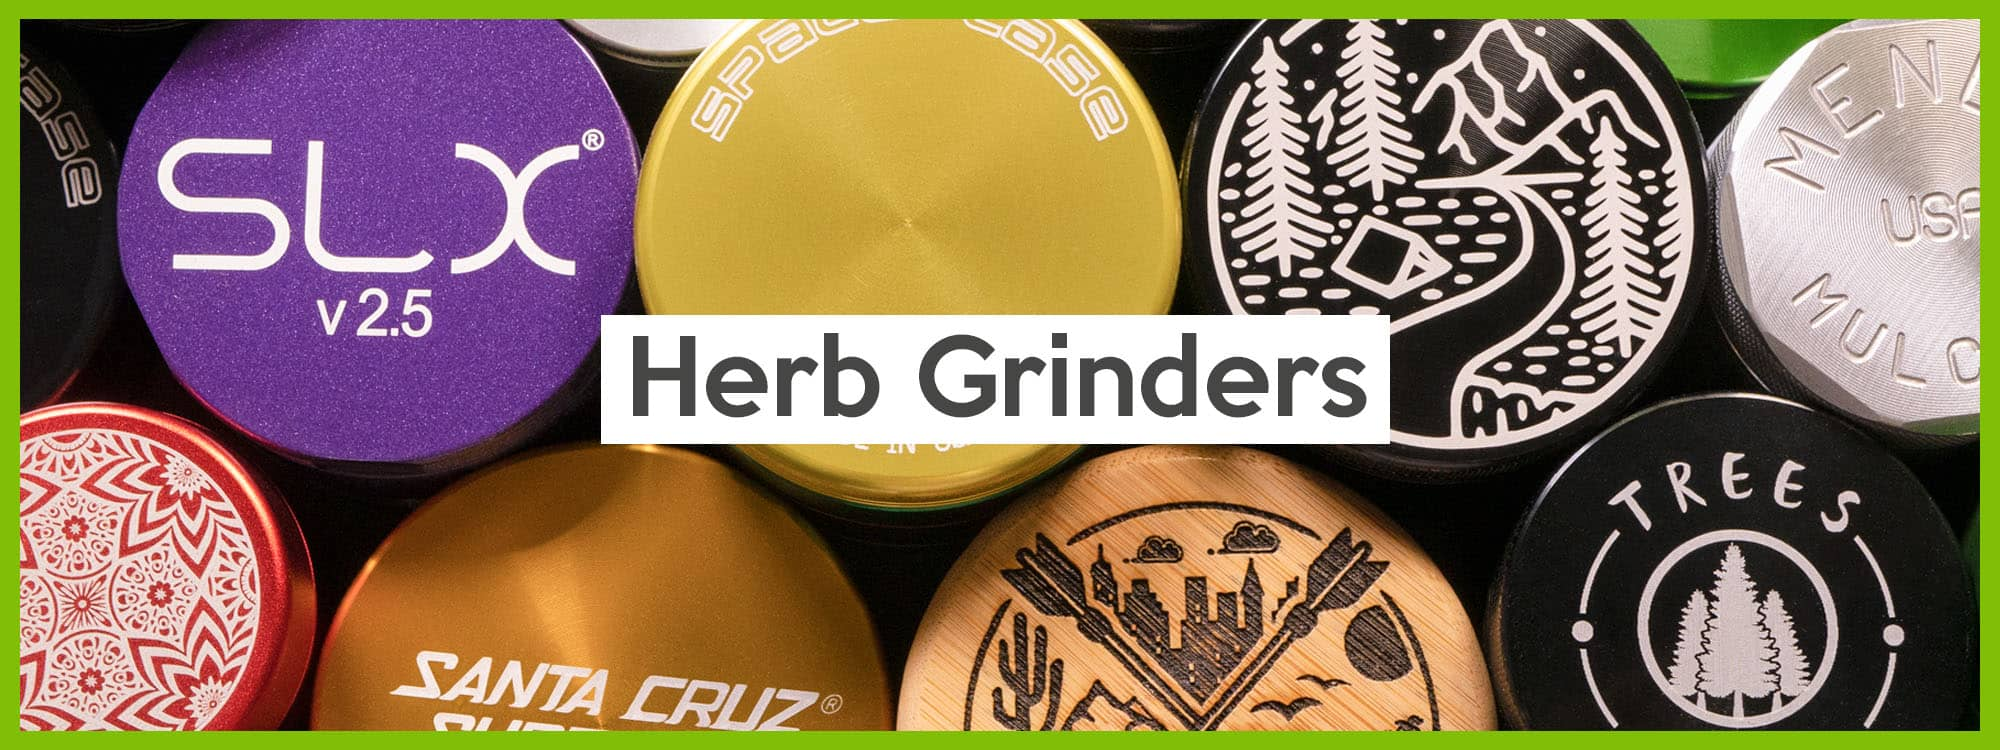 All herb grinders green friday sale